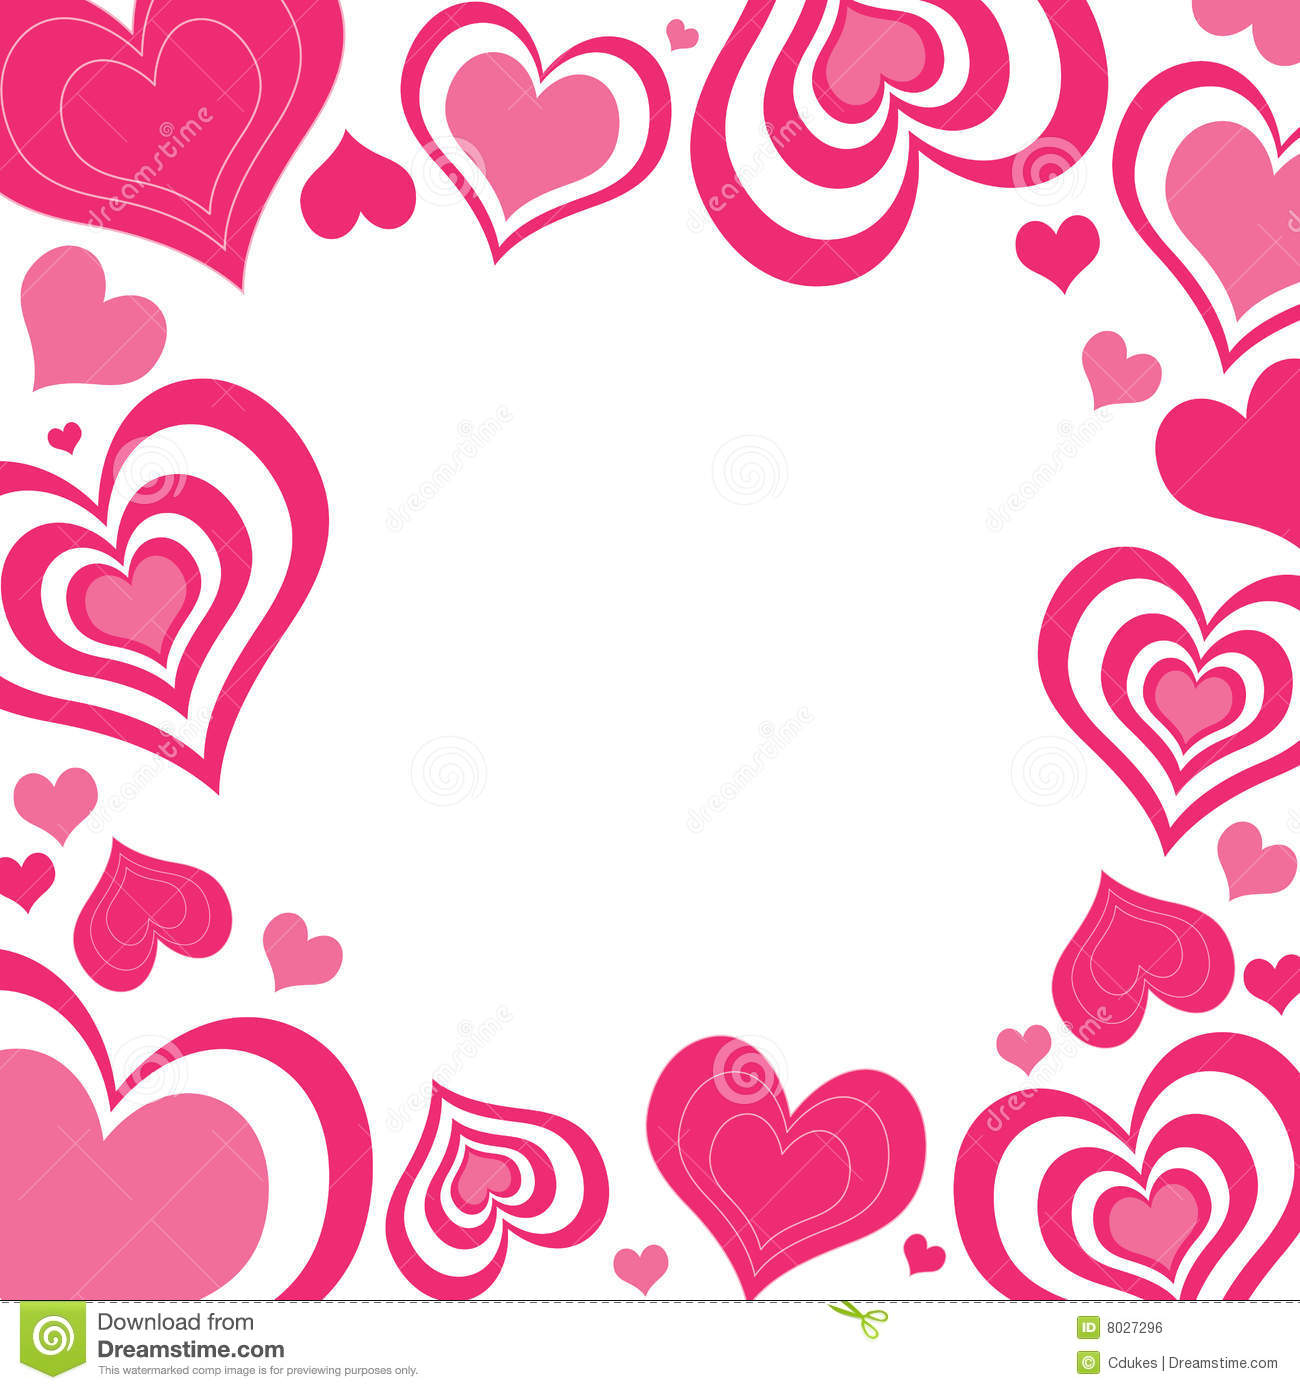 Valentine Clipart For Free at GetDrawings.com.